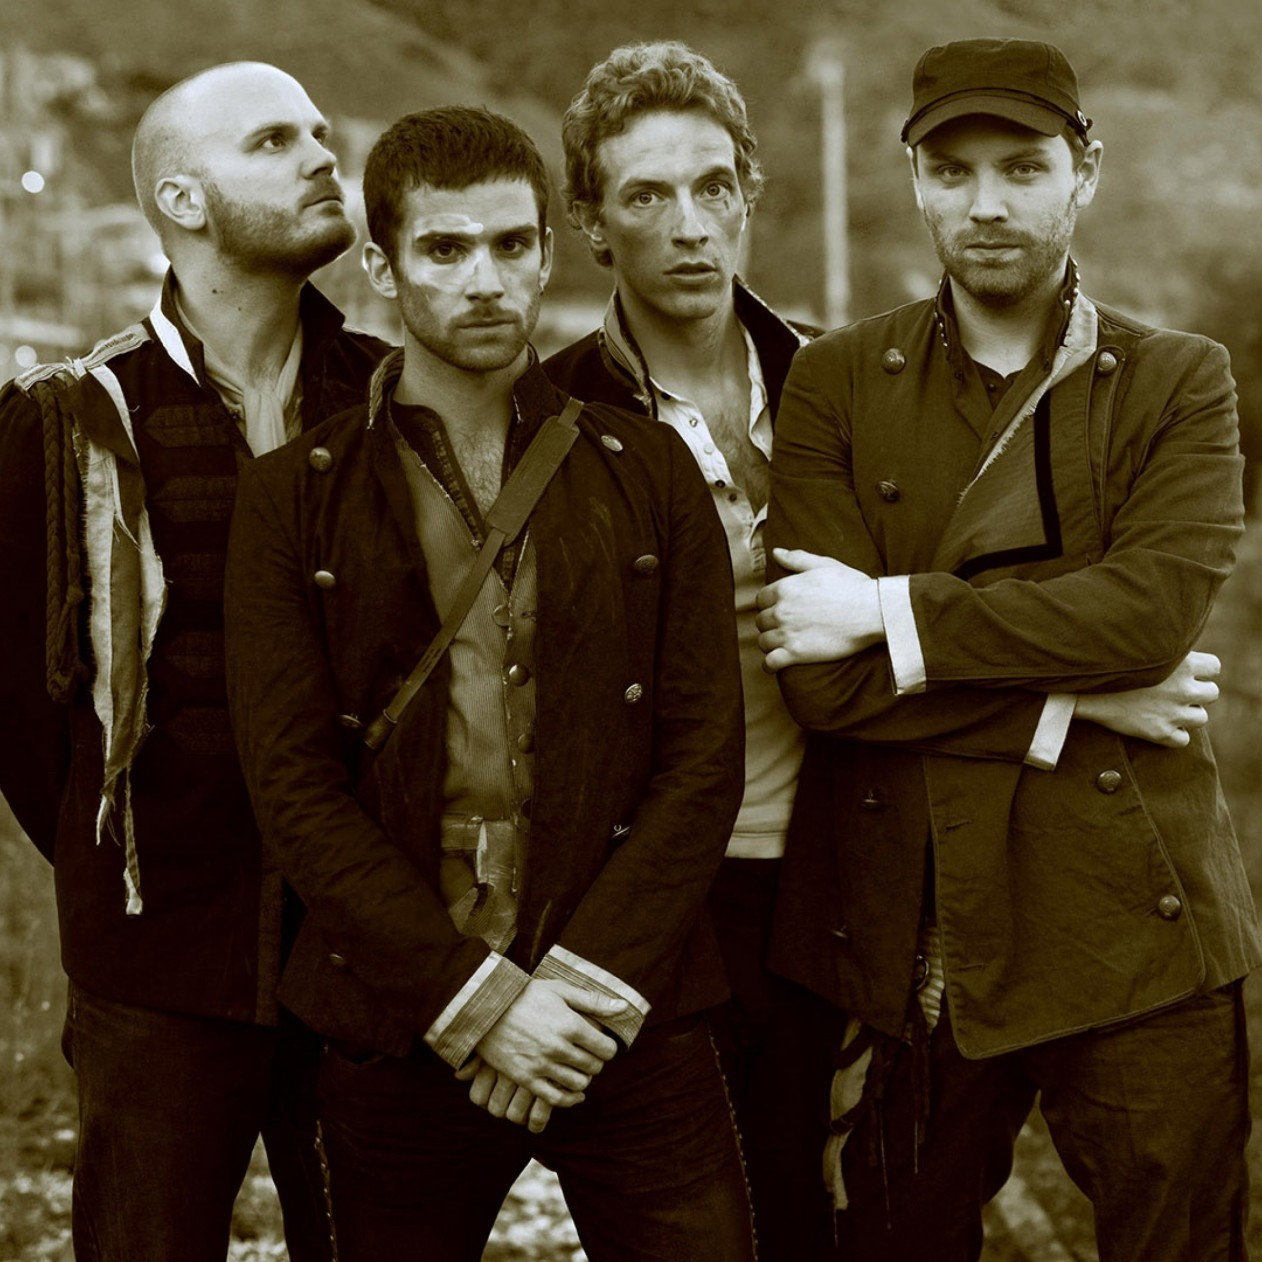 Coldplay Band Sepia Wallpaper for Apple iPad mini